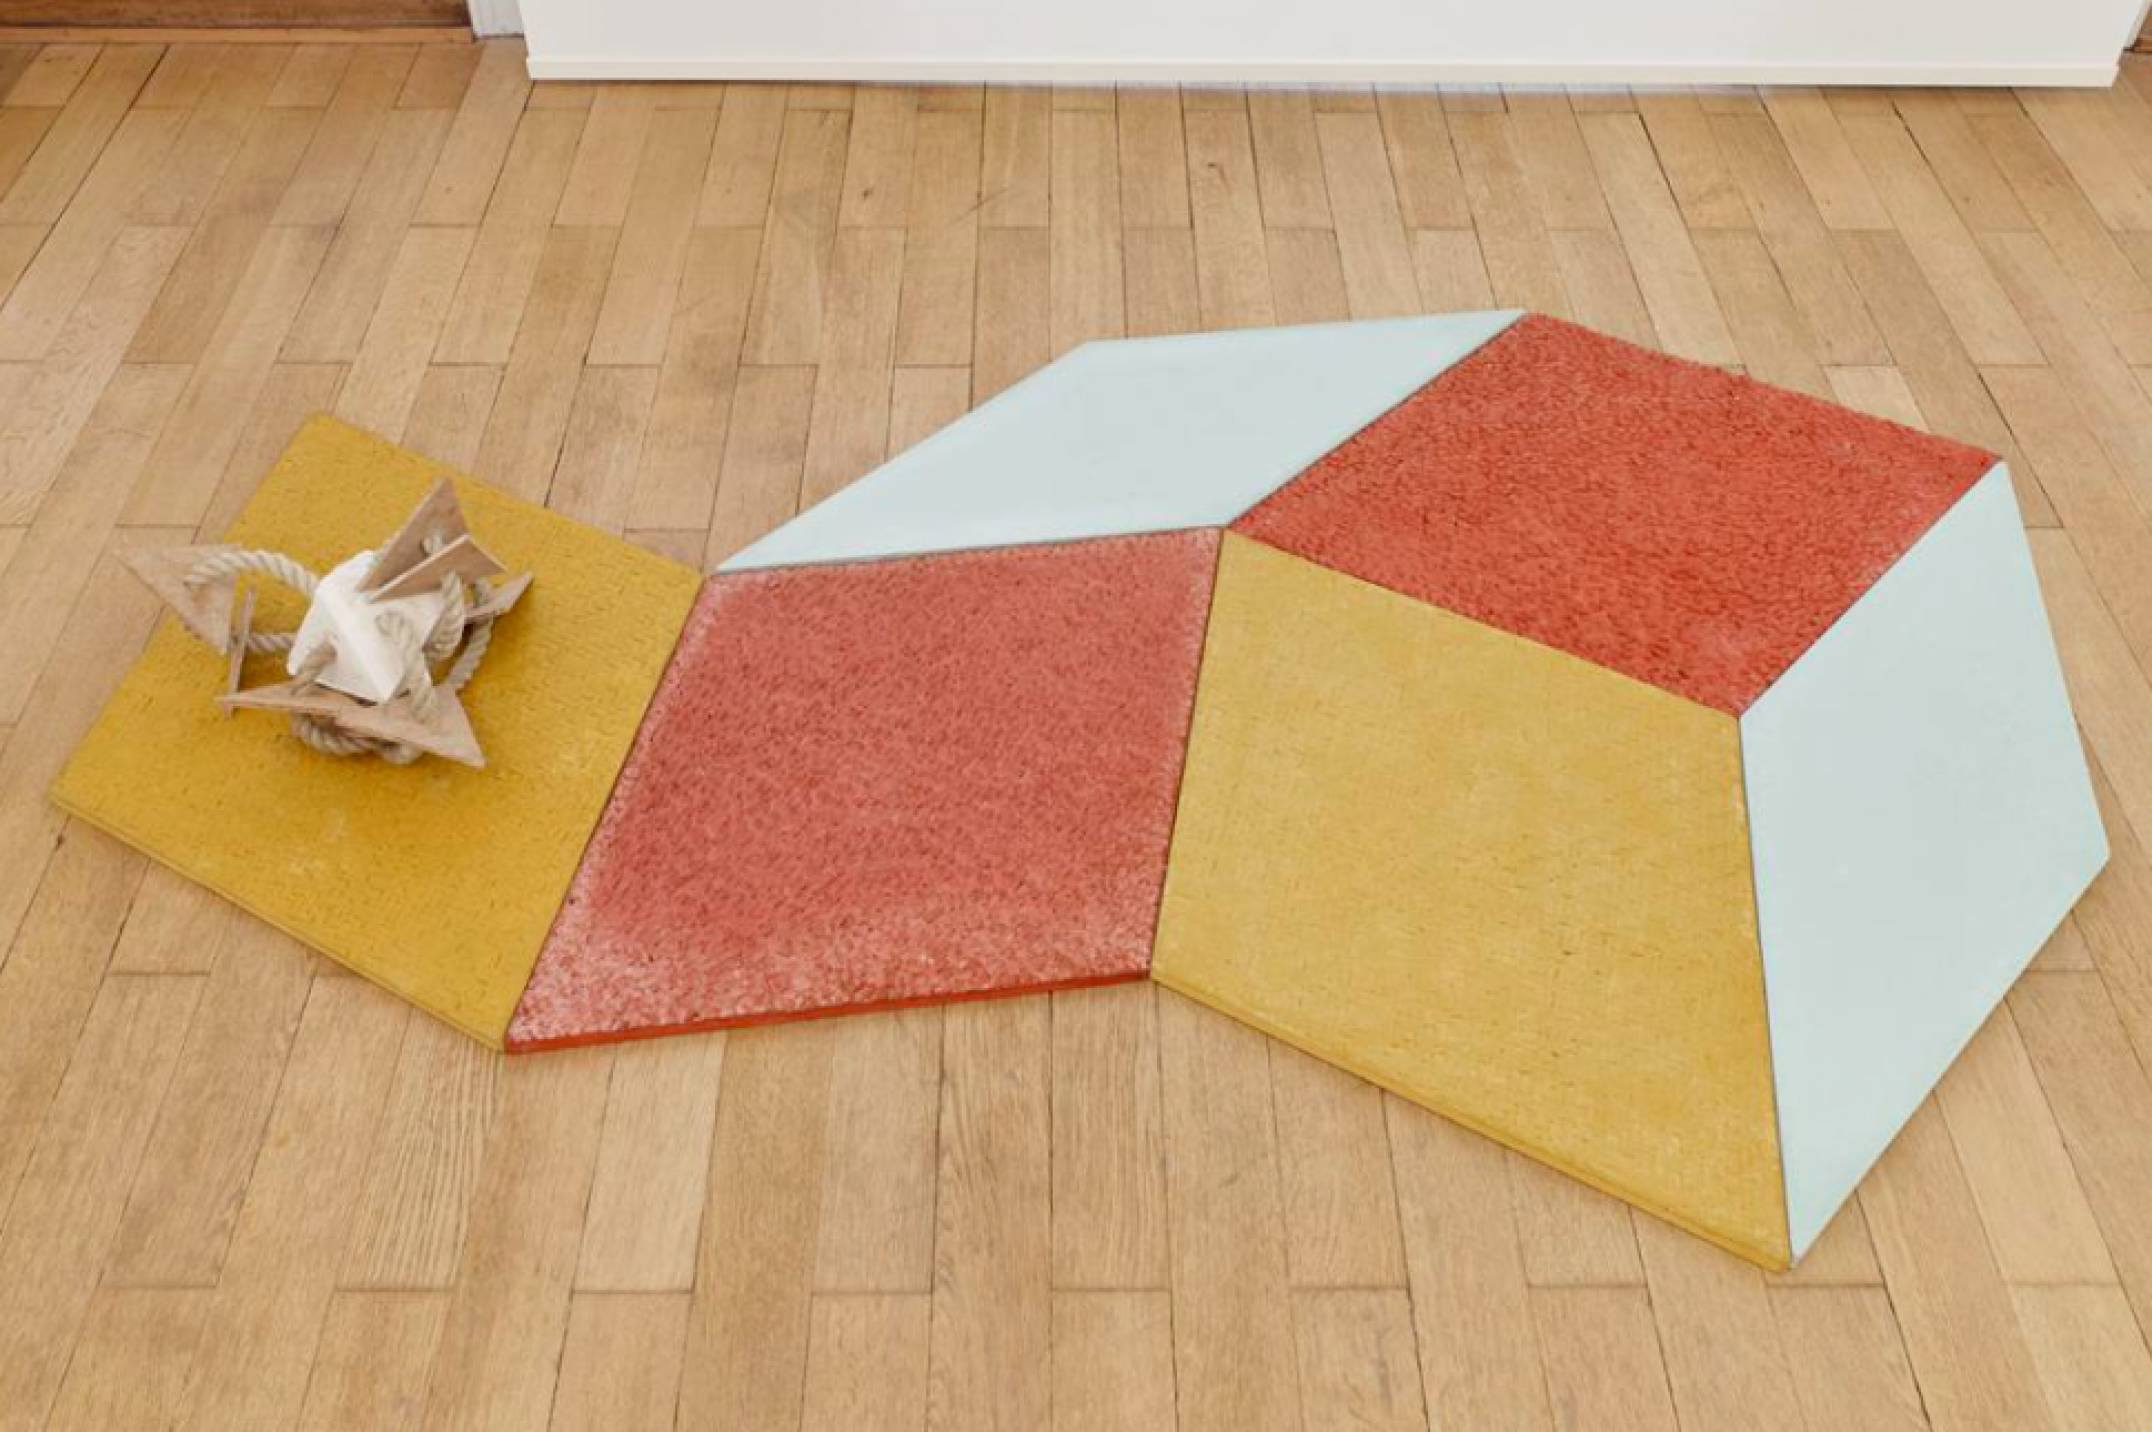 Mariana Castillo Deball, <em>Petate, Xipe, Turquesa, Xipe, Petate</em>, 2017, colored concrete tiles with relief, 158 × 114 cm - Mendes Wood DM